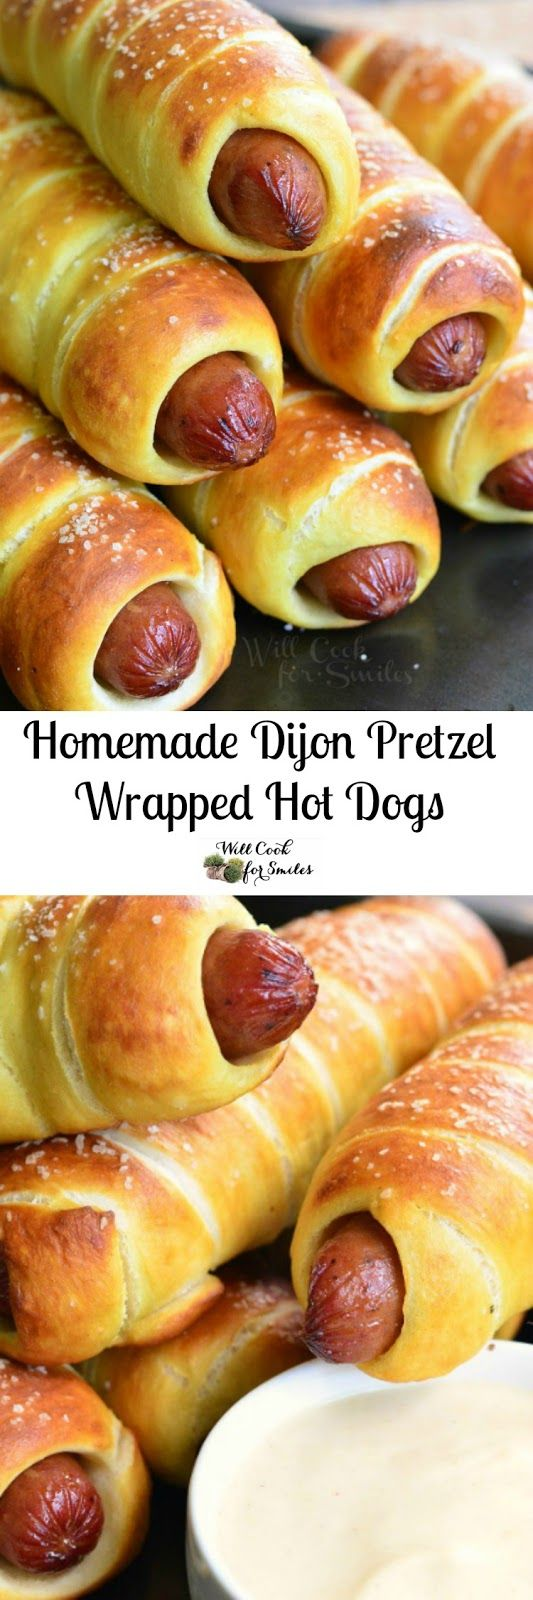 Homemade Dijon Pretzel Wrapped Hot Dogs with Maple Dijon Dipping Sauce